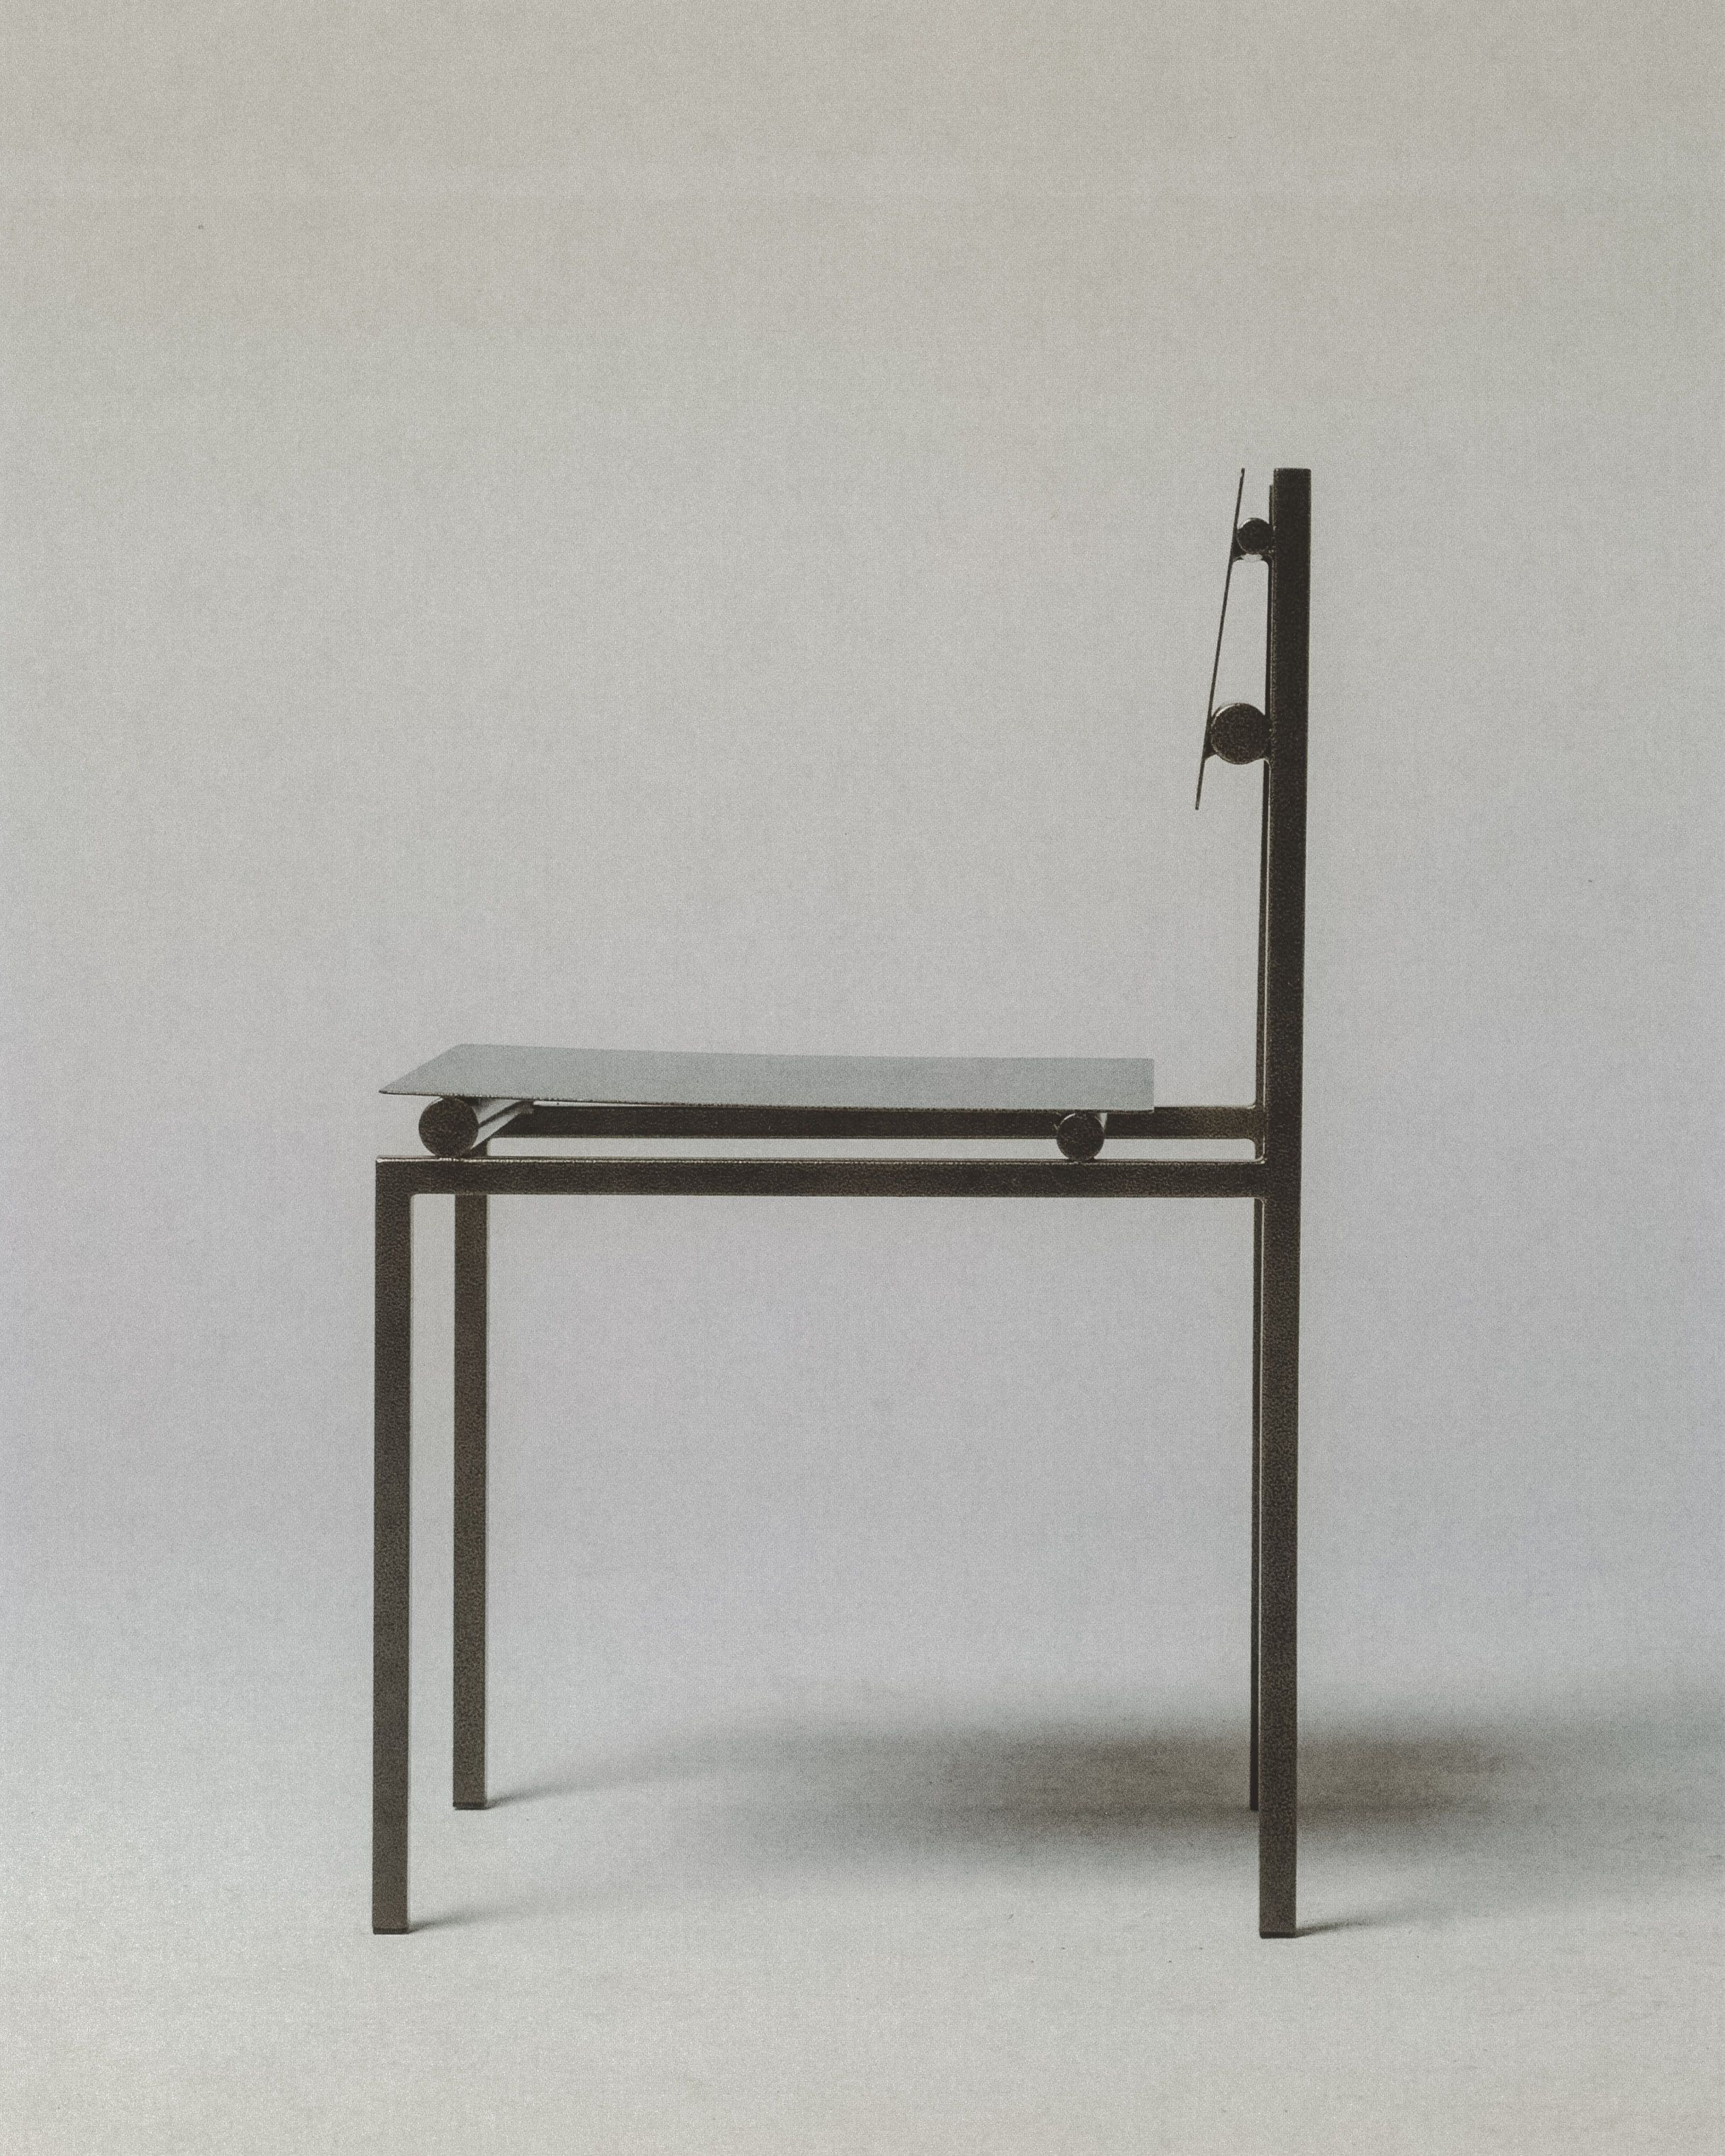 Suspension Metal Dining product image 3